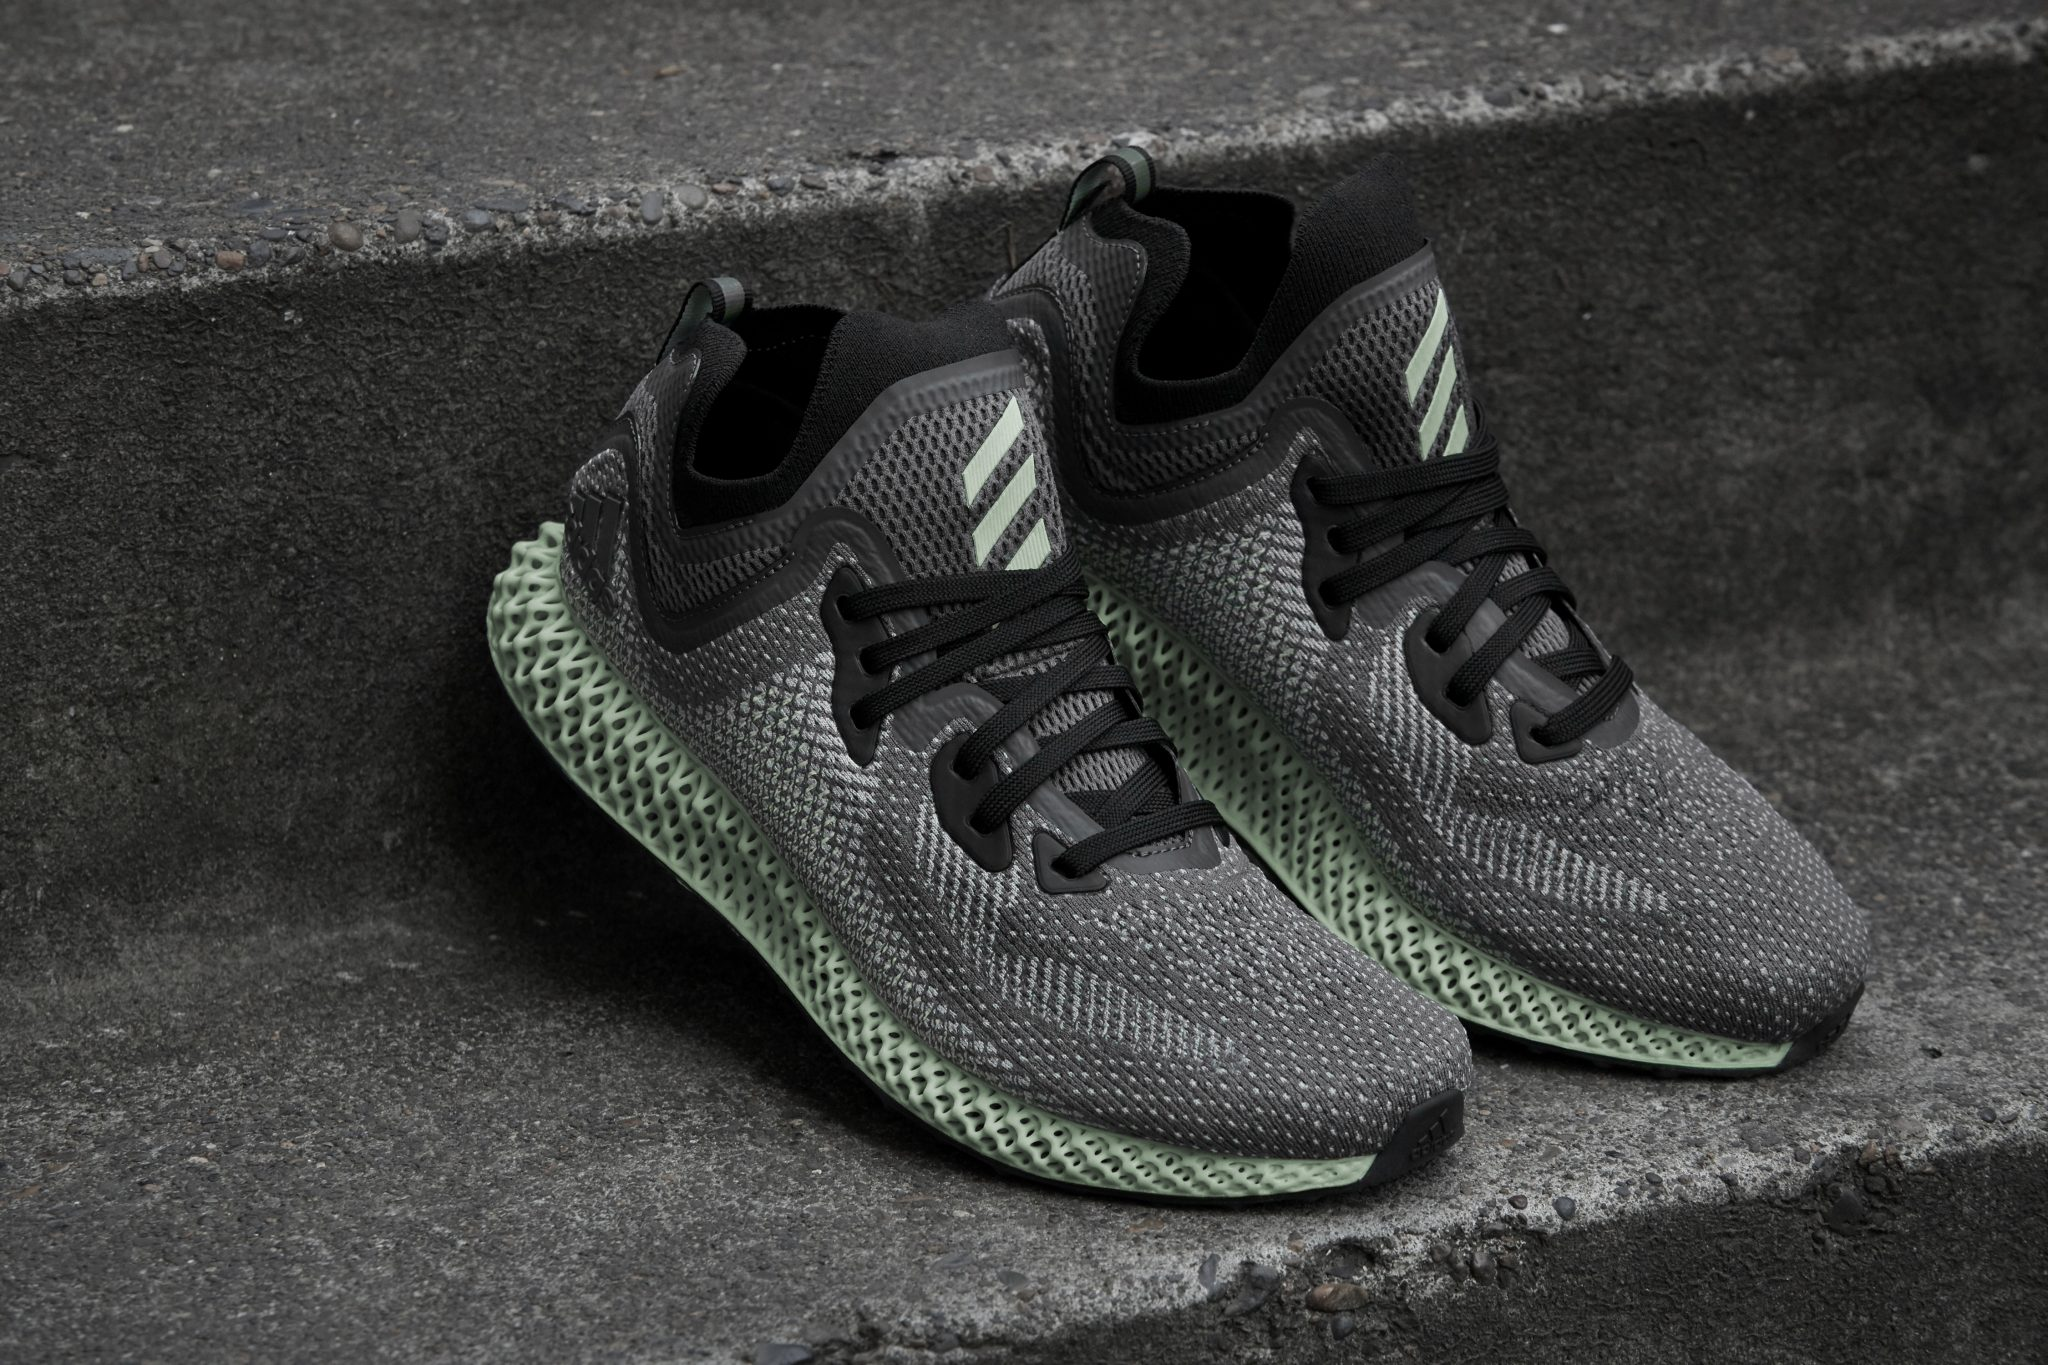 dbacc4d255e710 AlphaEDGE 4D LTD 3D printed shoes now available from adidas - 3D Printing  Industry